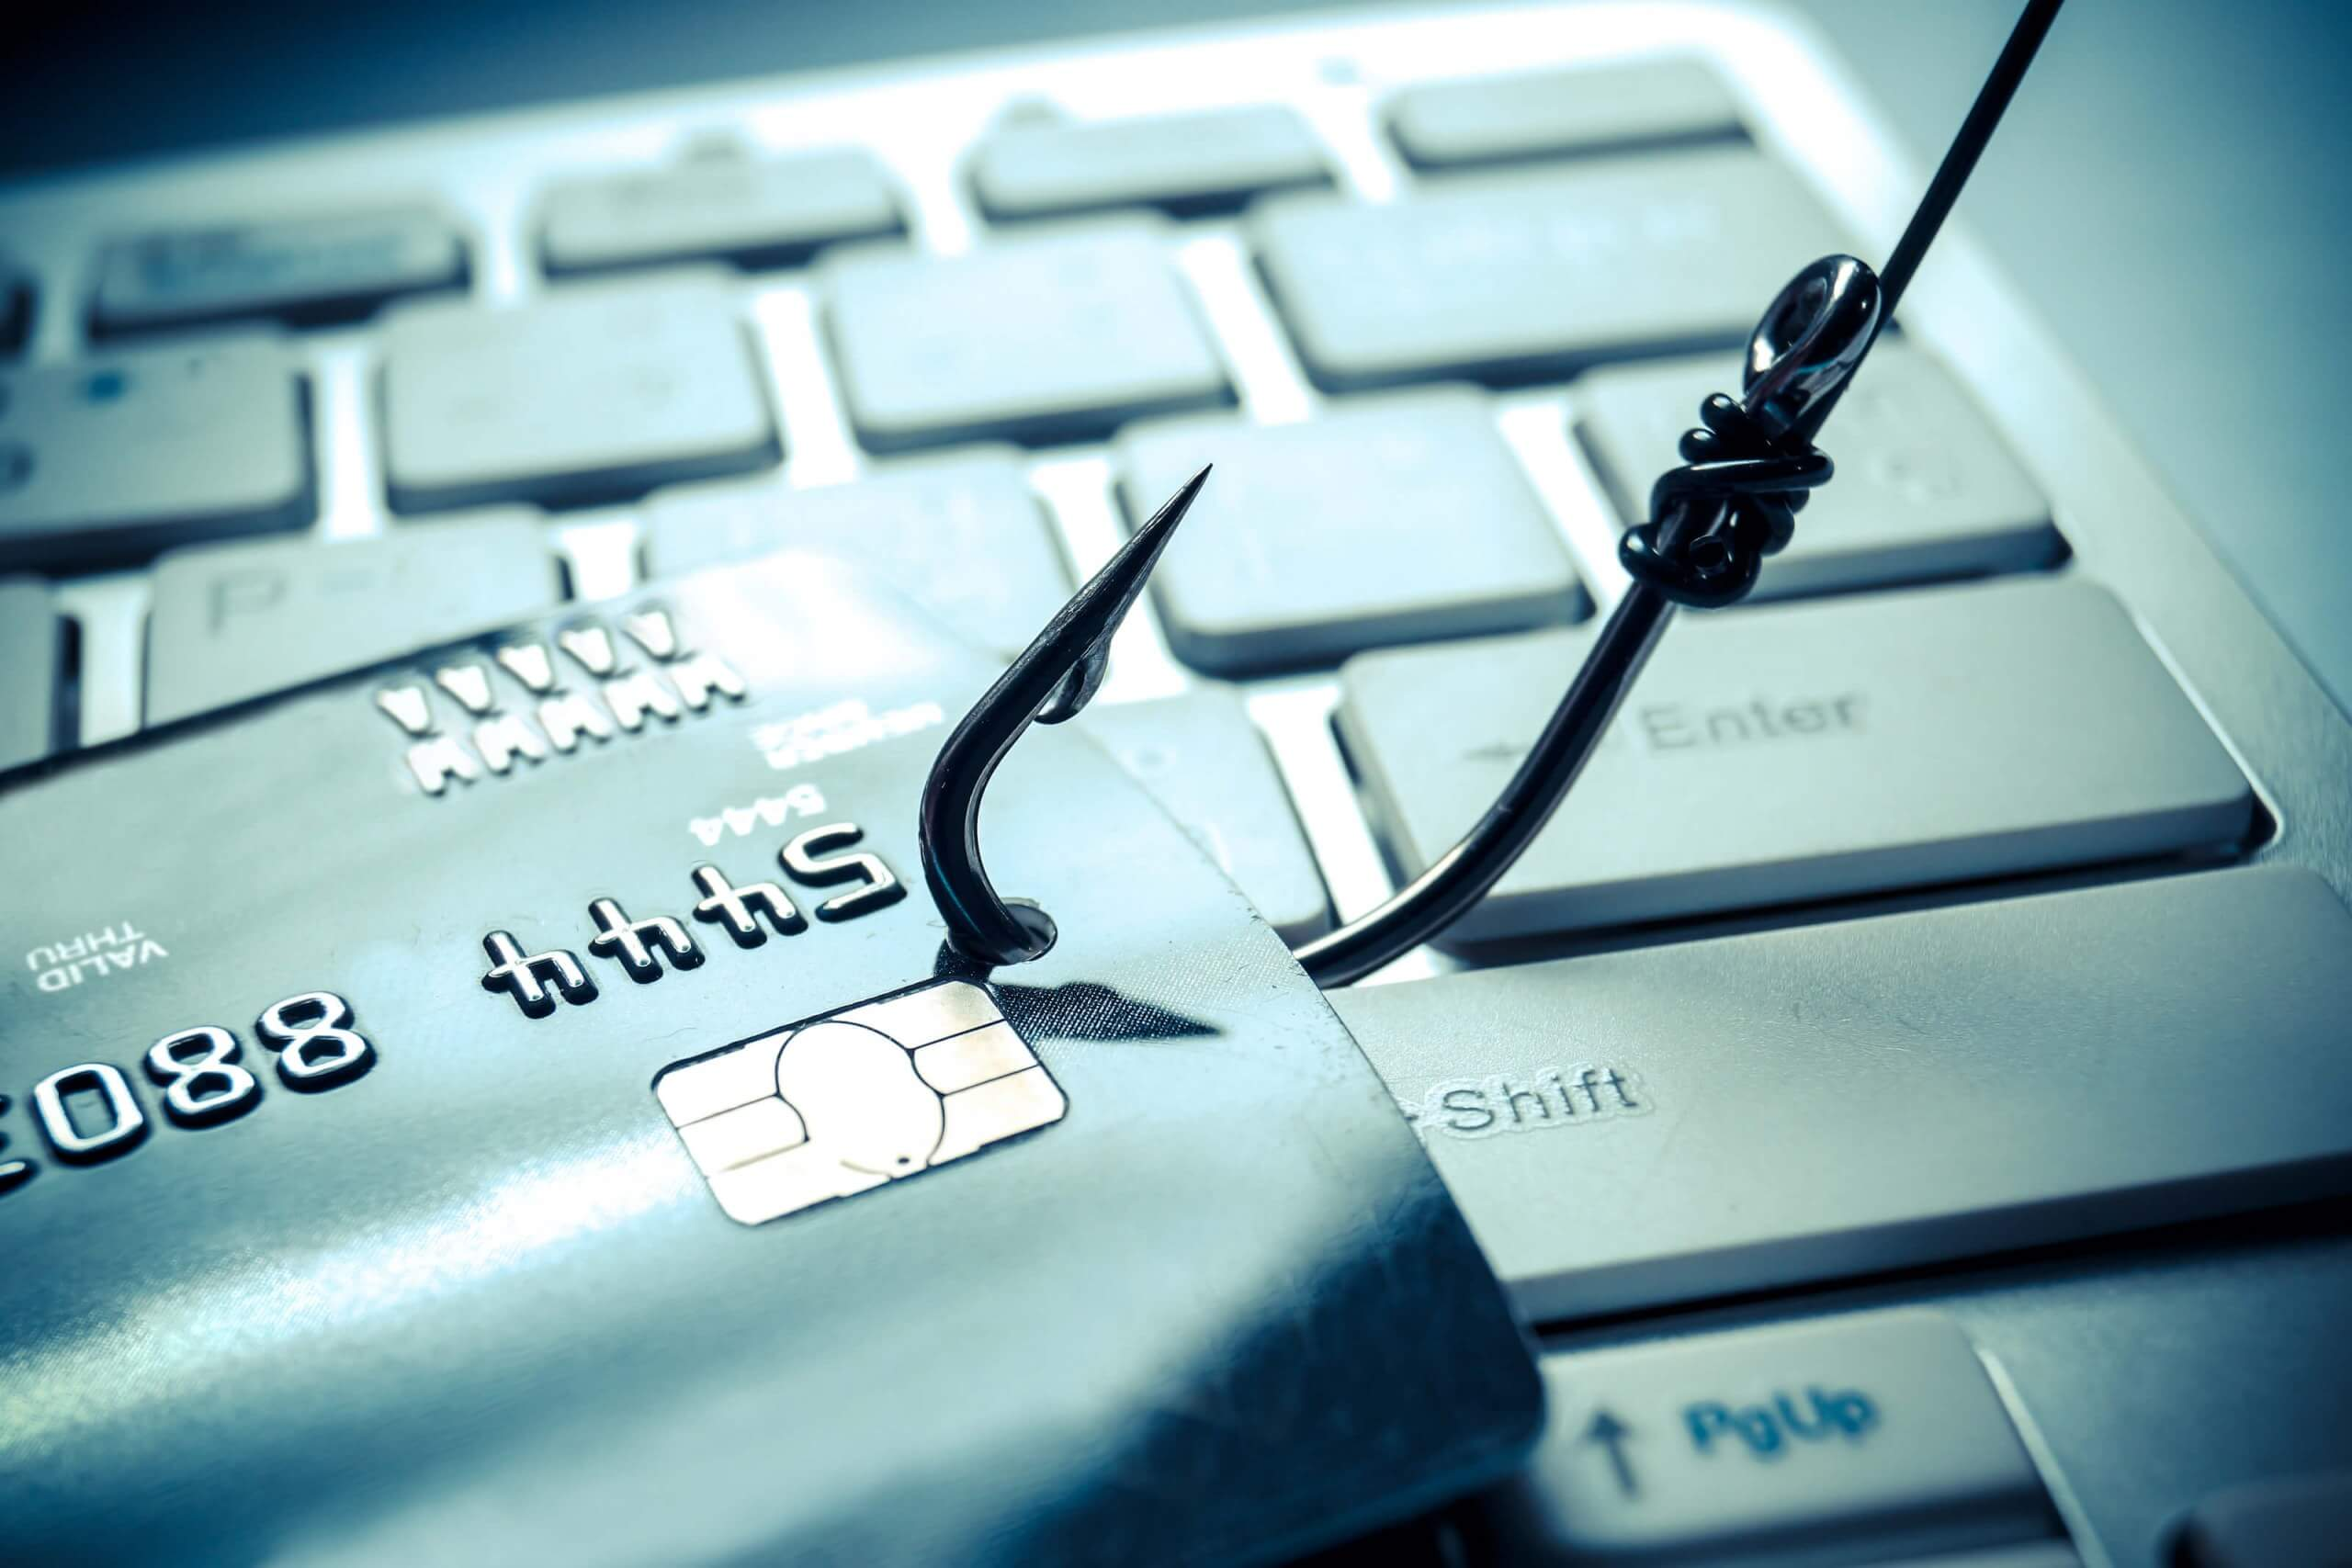 Phishing scam tricks Texas school district out of $2.3 million